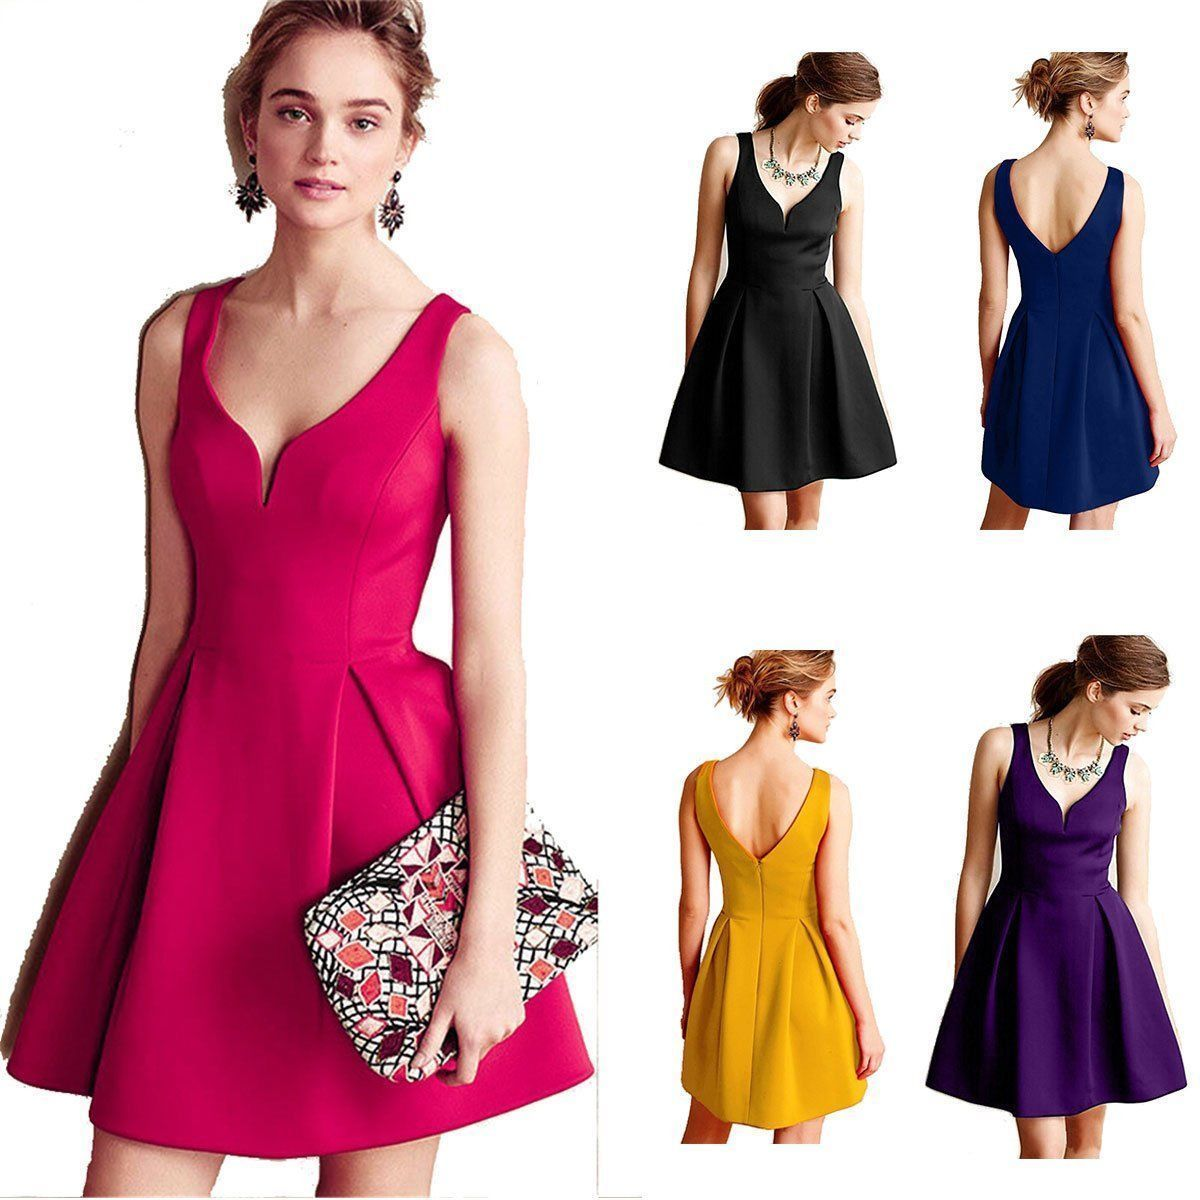 Cool amazing women vneck backless cocktail gown party evening prom